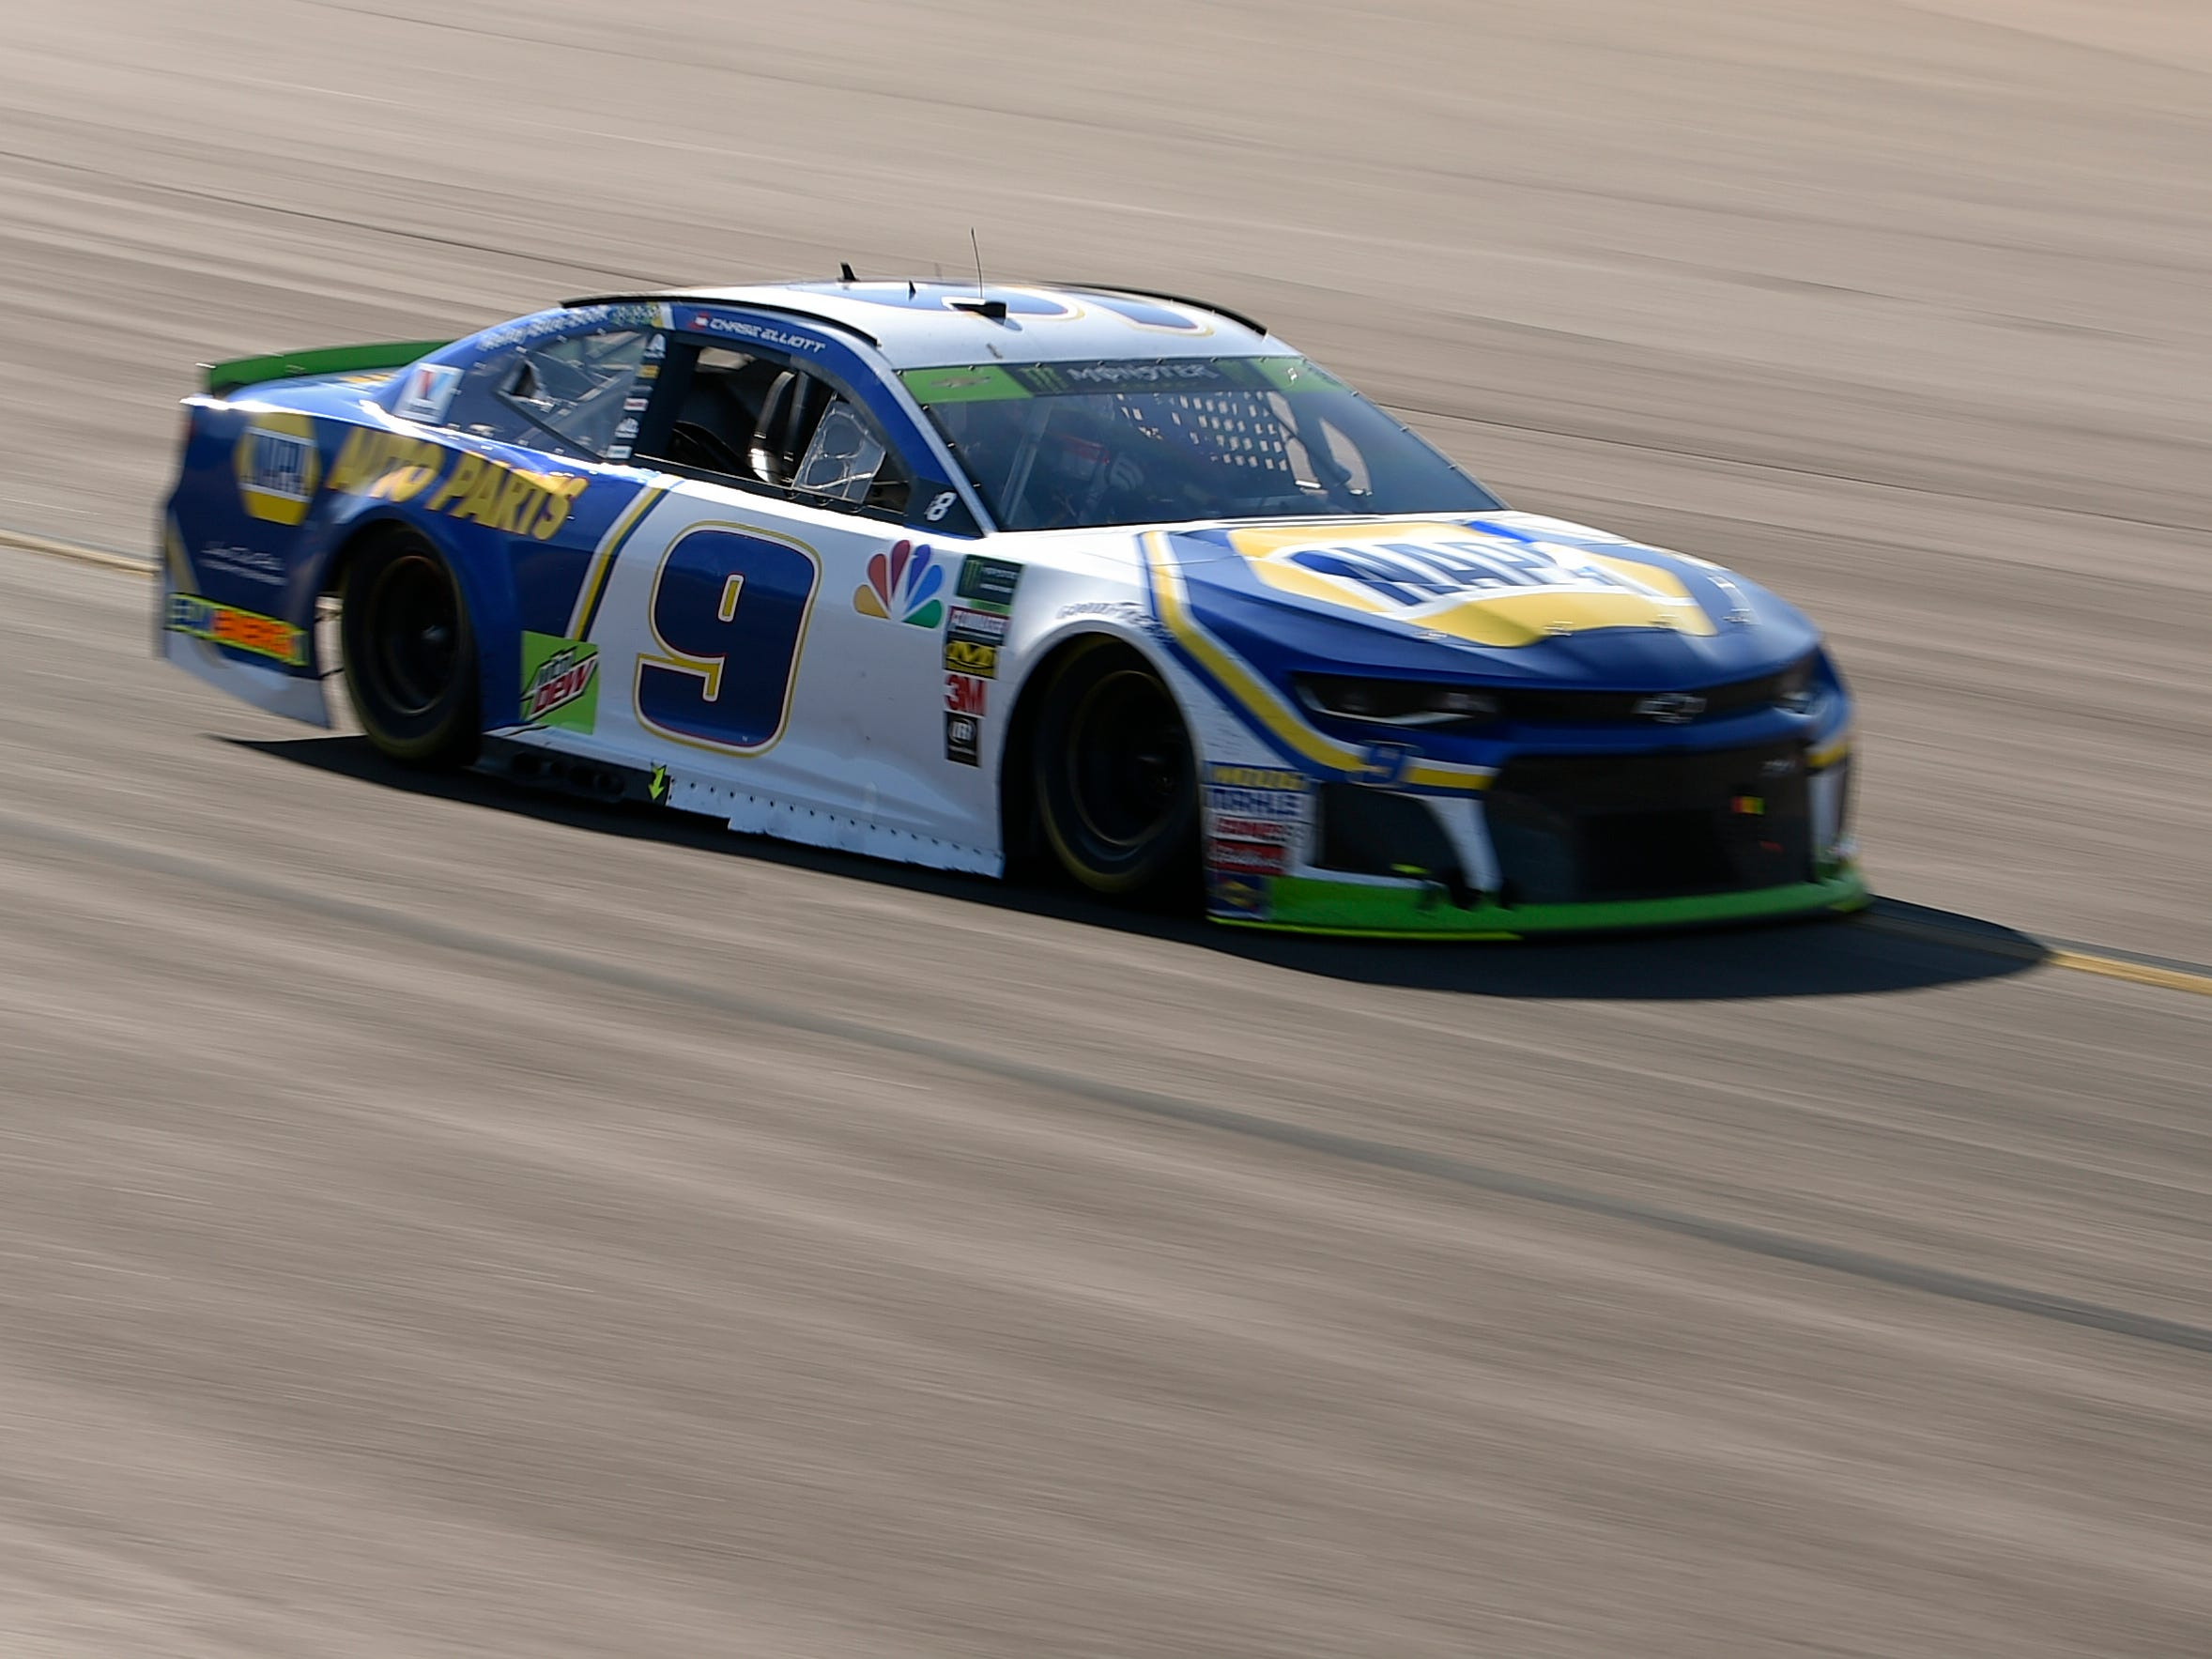 Nov 11, 2018; Avondale, AZ, USA; Monster Energy NASCAR Cup Series driver Chase Elliott (9) during the Can-Am 500 at ISM Raceway. Mandatory Credit: Kelvin Kuo-USA TODAY Sports